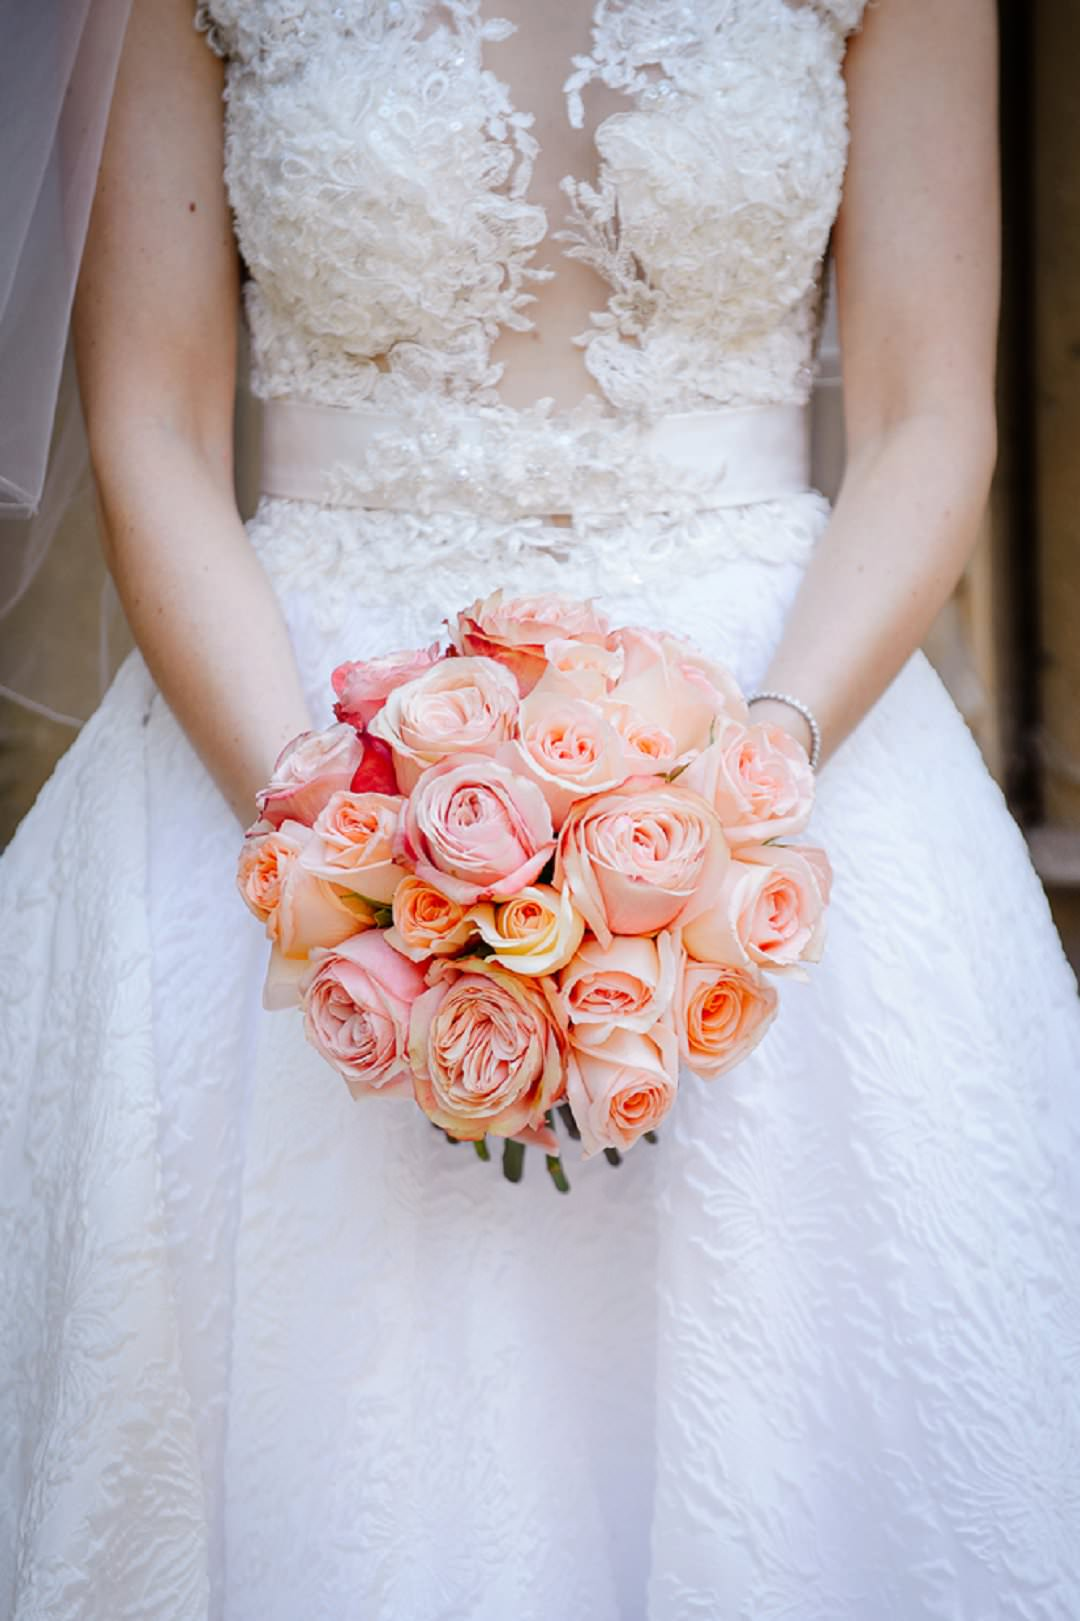 peach roses bouquet held by bride